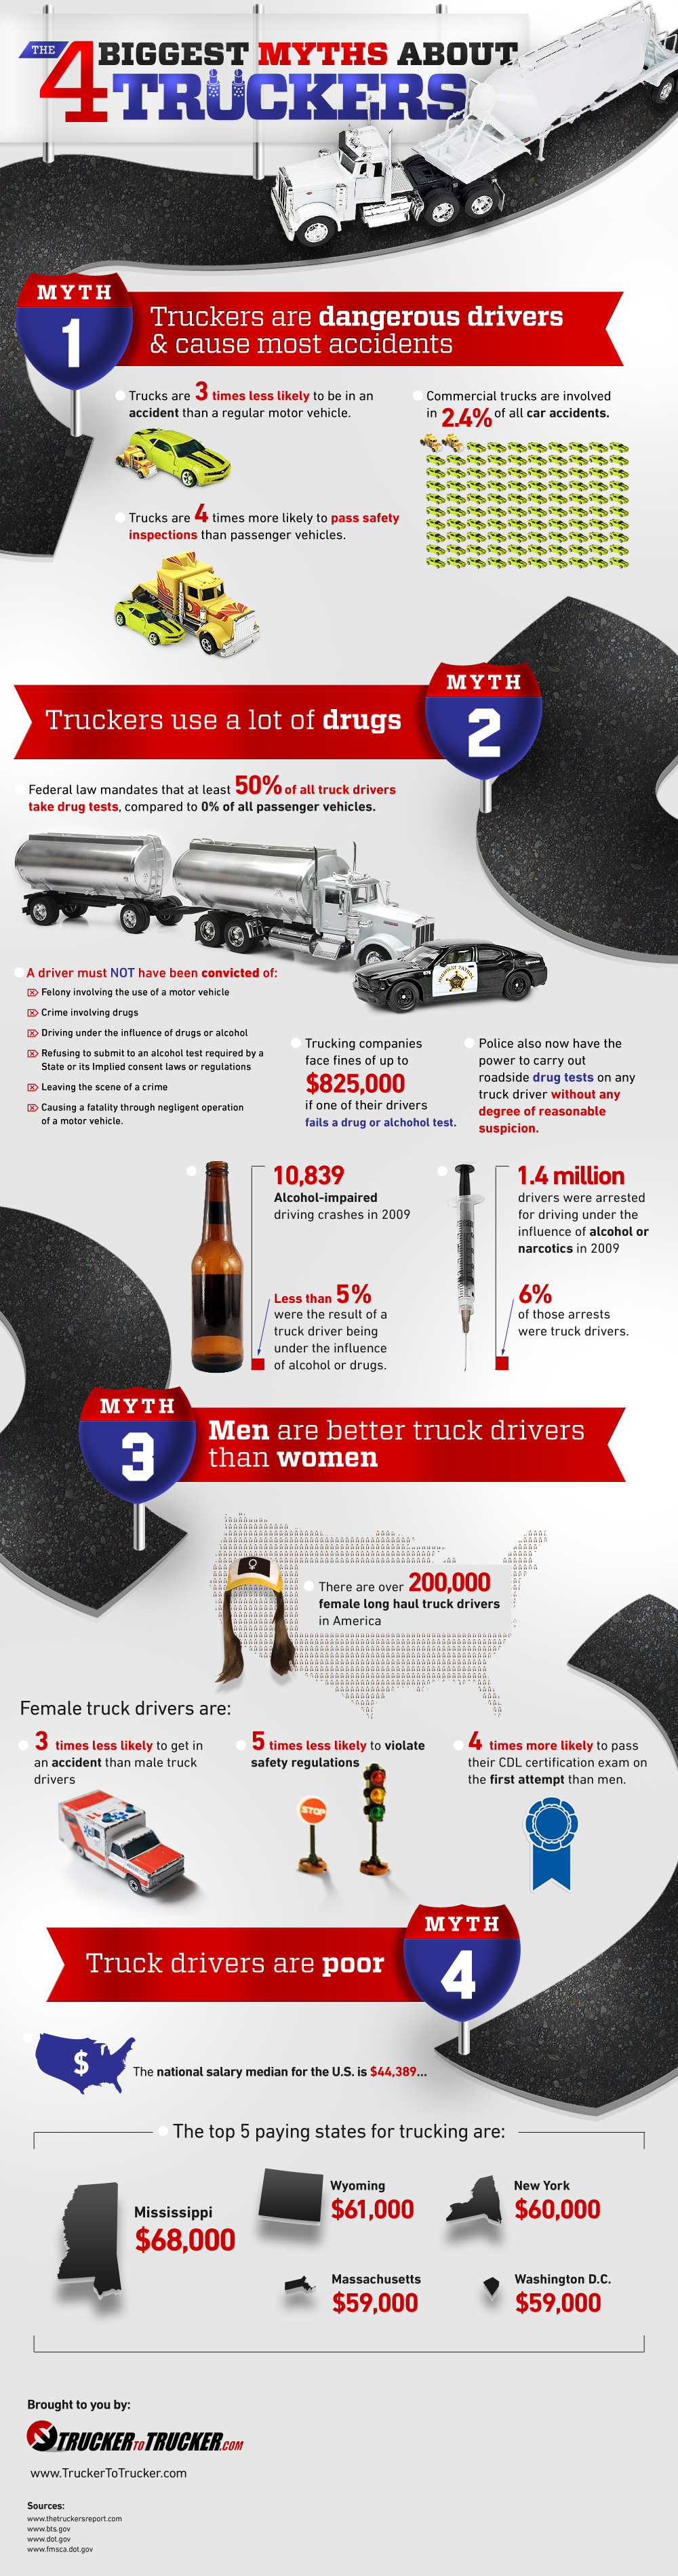 the american trucker - top trucker myths